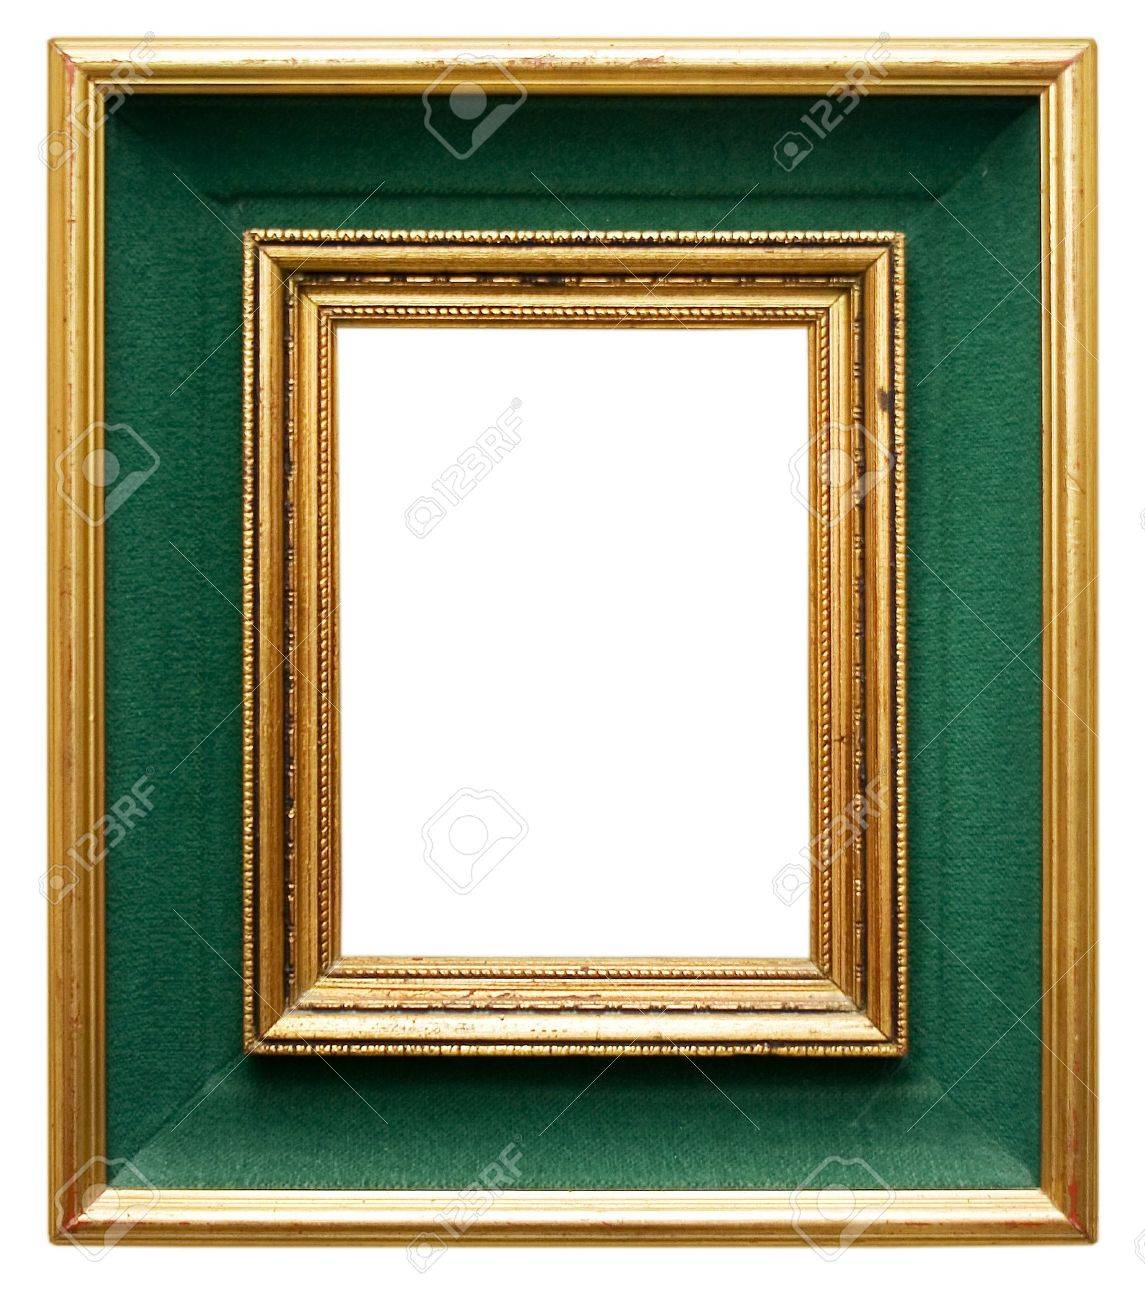 Green Frame With Gilded Borders Stock Photo Picture And Royalty